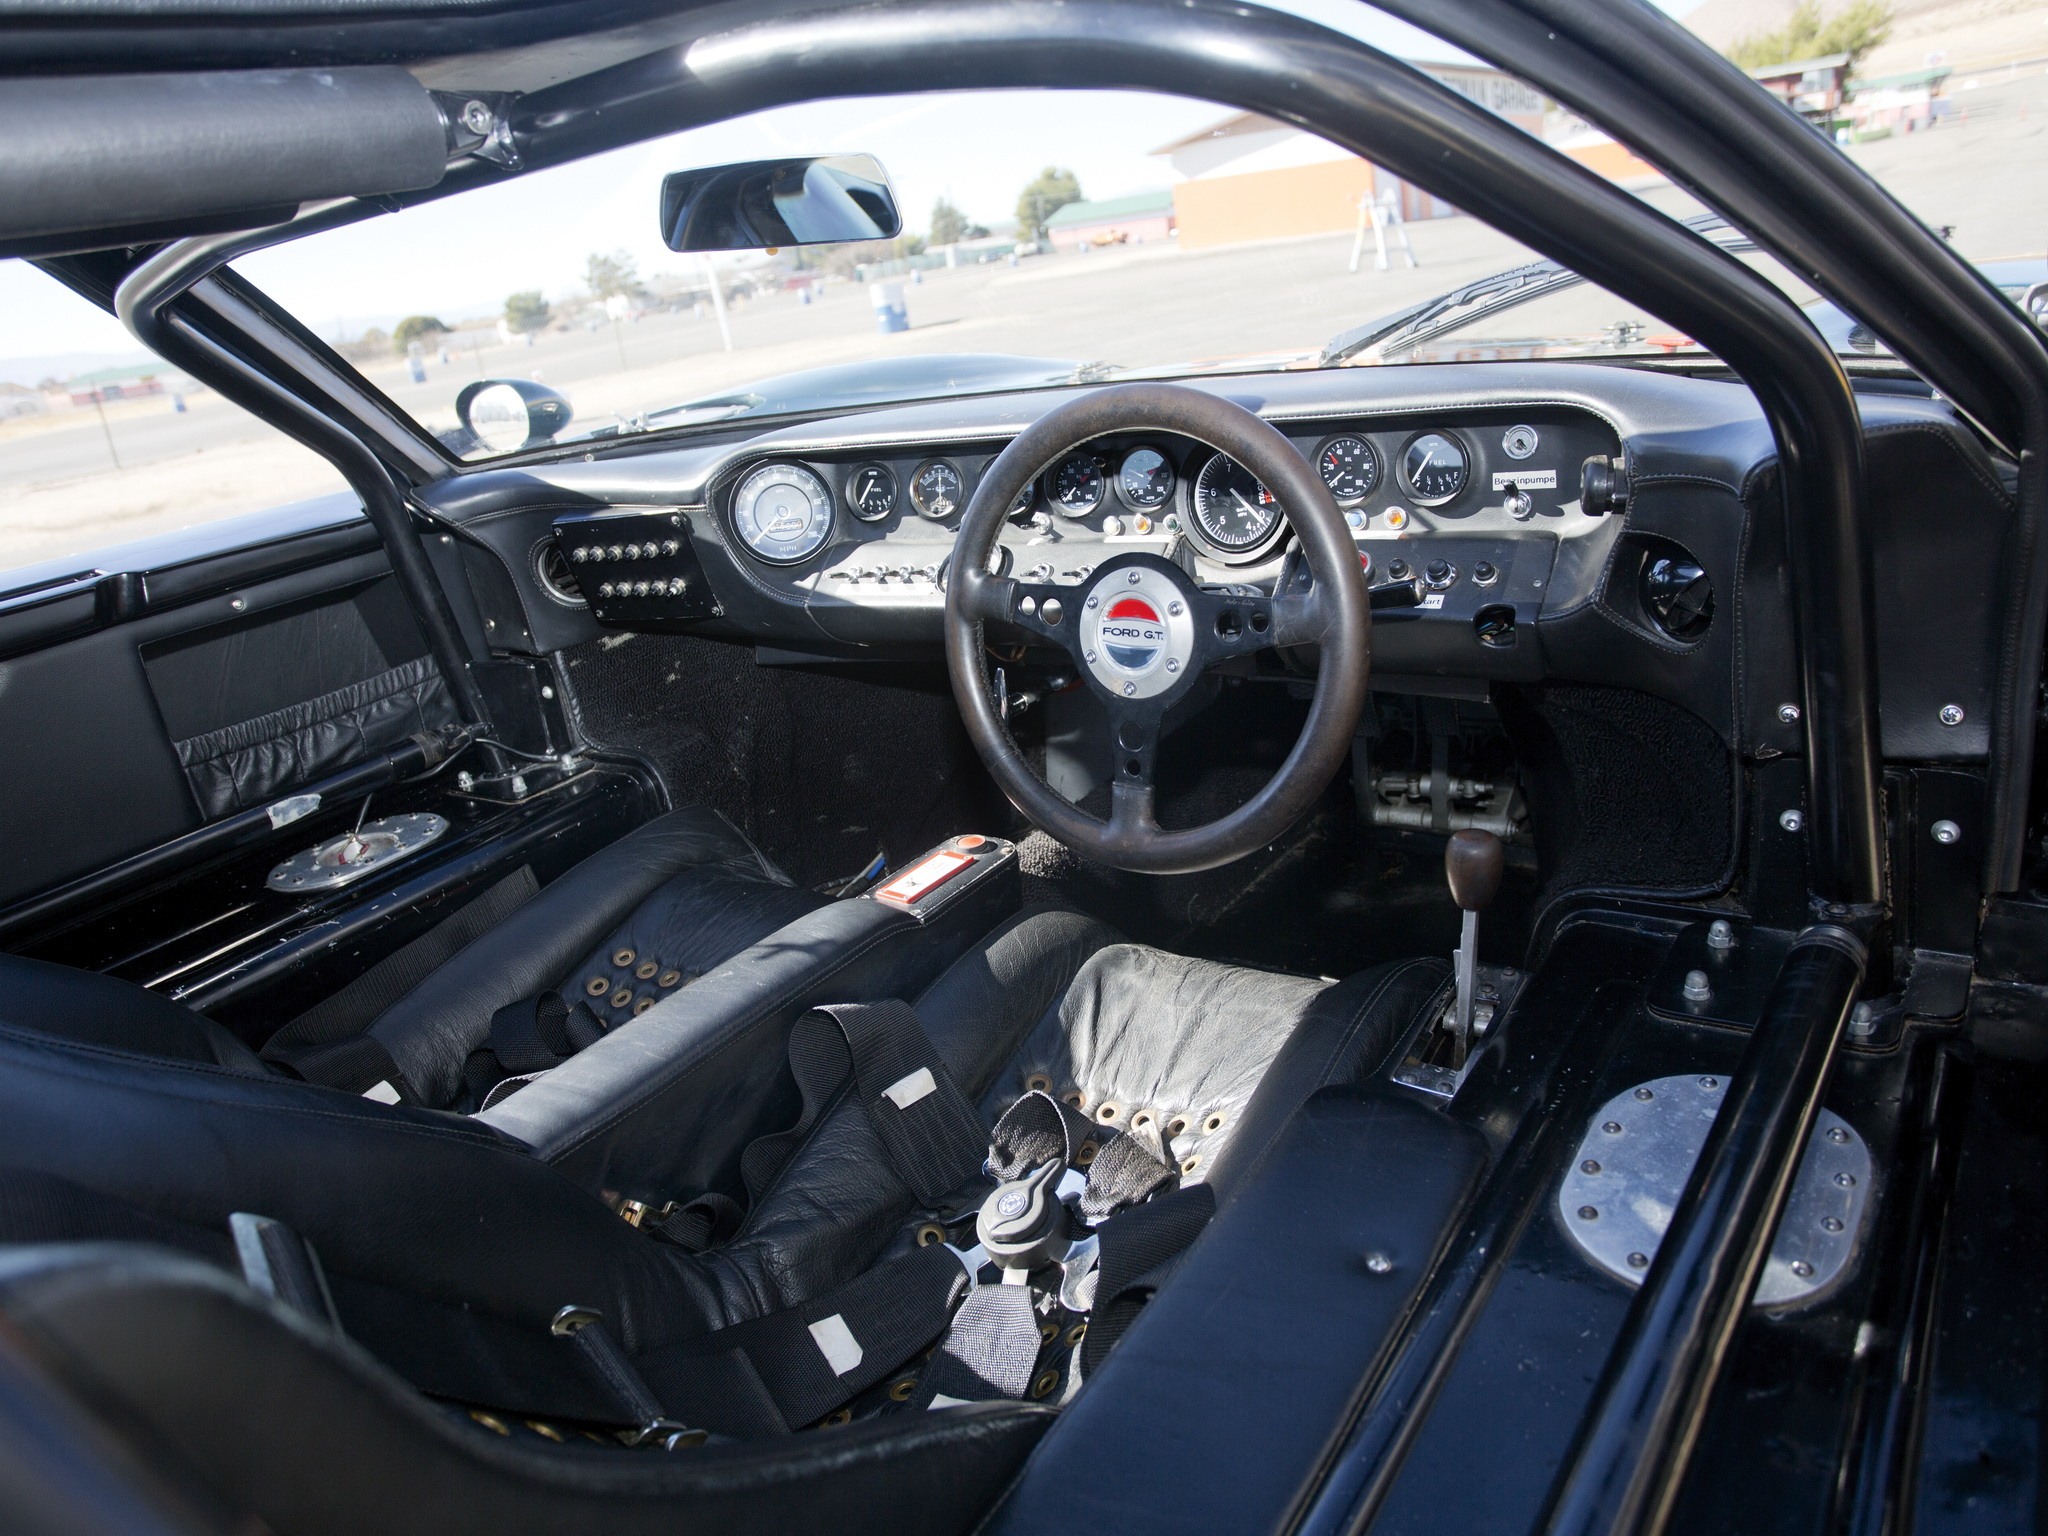 1965 ford gt40 mkii supercar race racing classic g t interior g wallpaper 2048x1536 147590 wallpaperup